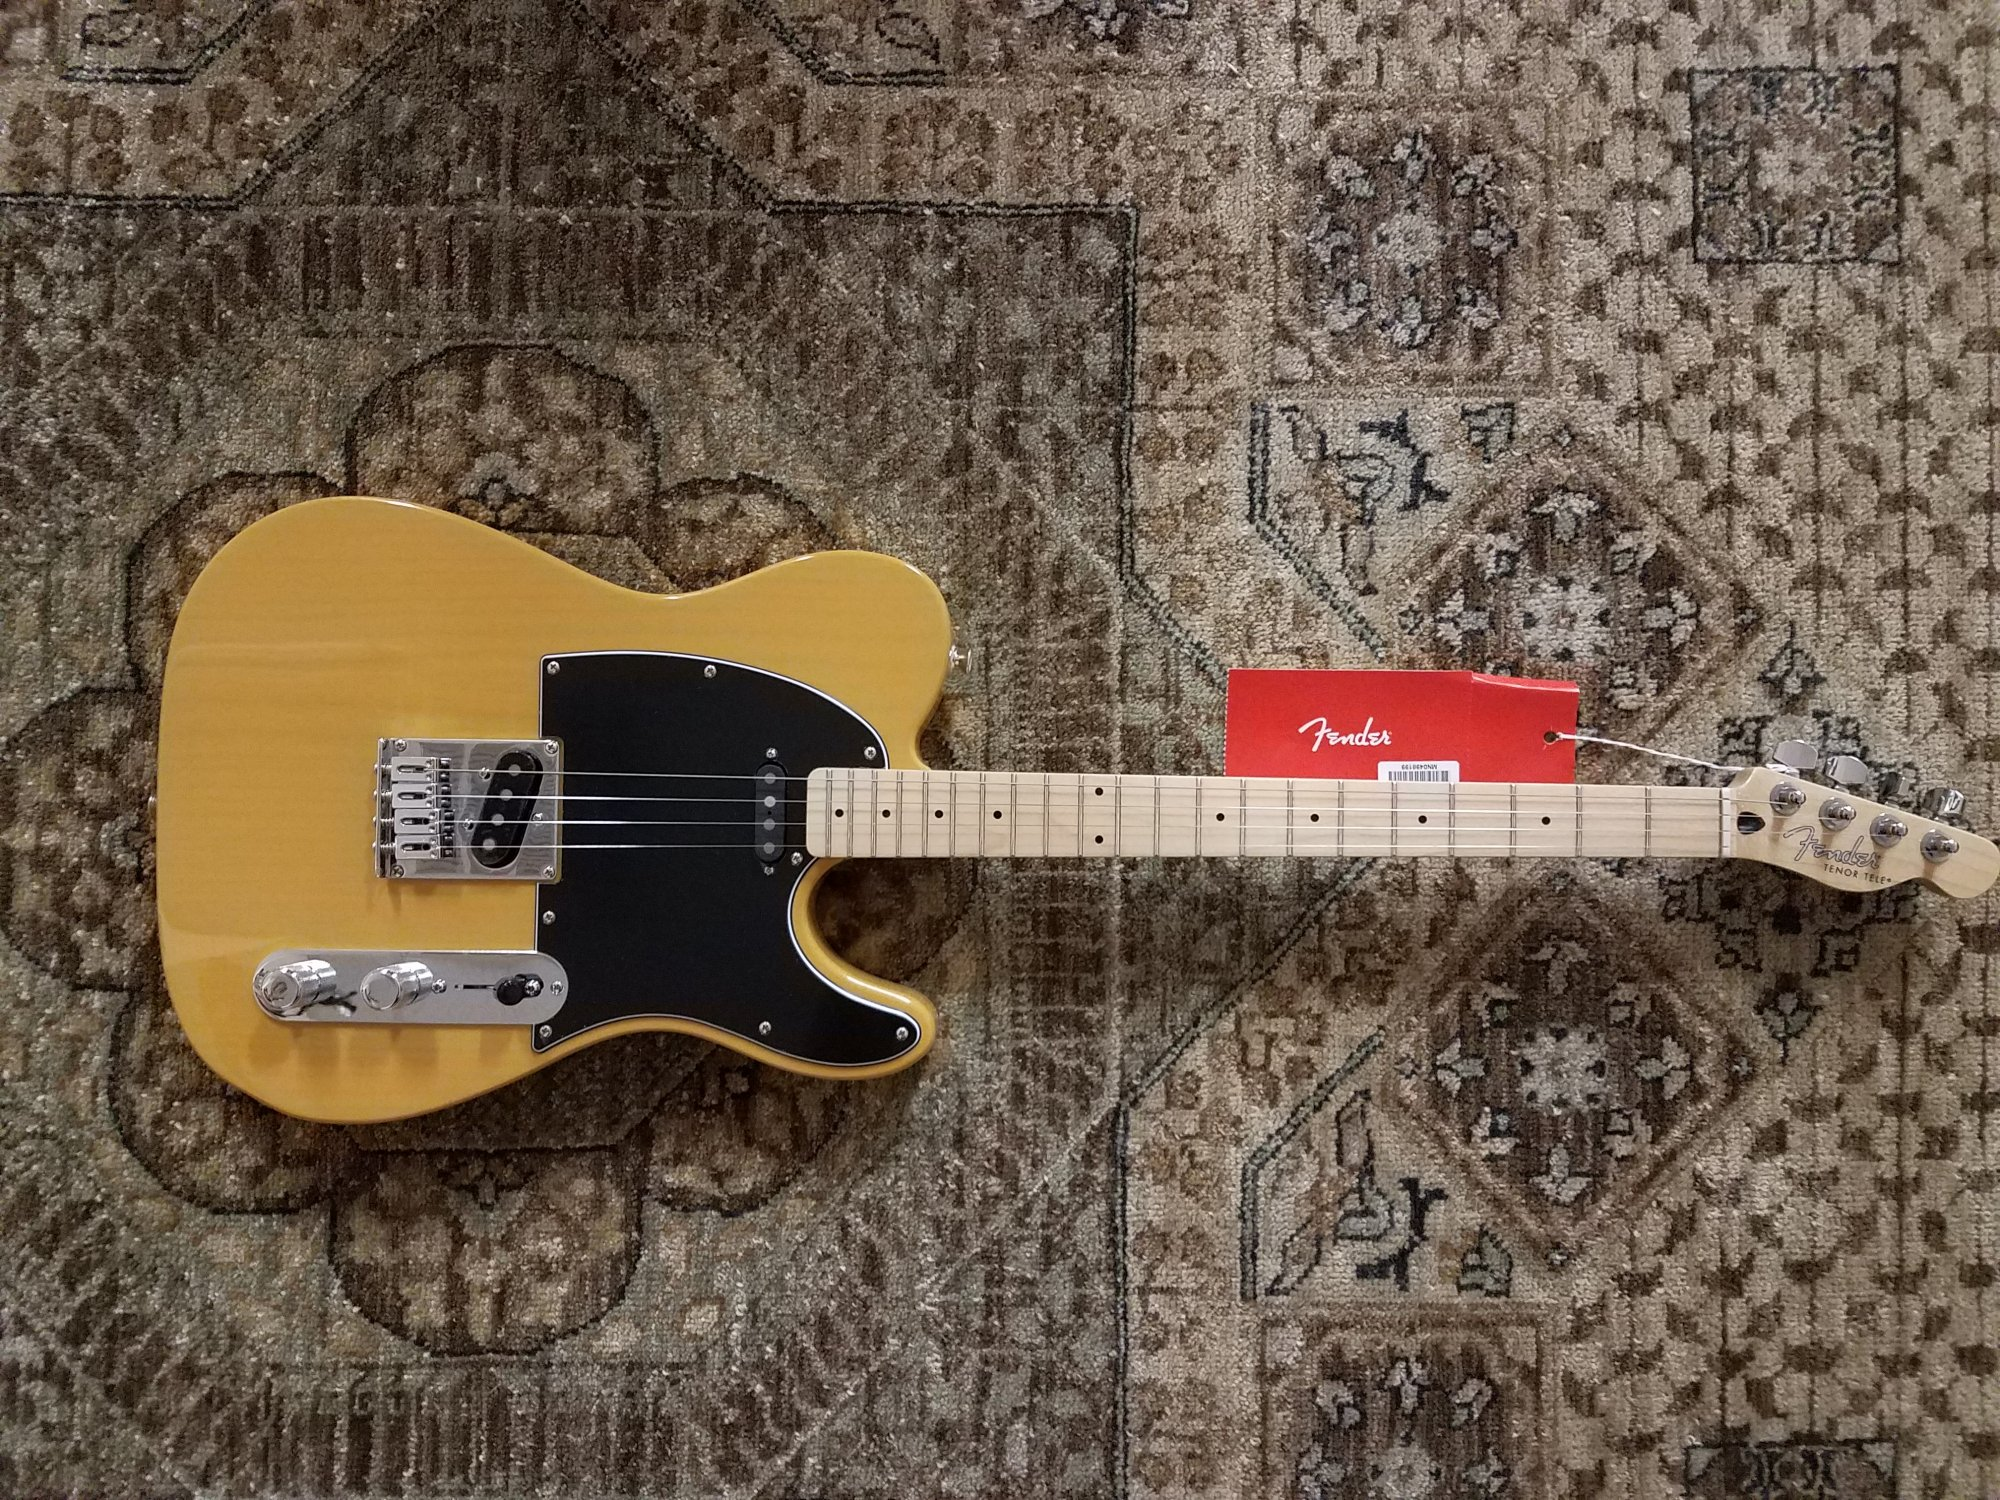 Fender Alternate Reality Tenor Telecaster in Butterscotch Blonde w/ Gig Bag & Pro Setup